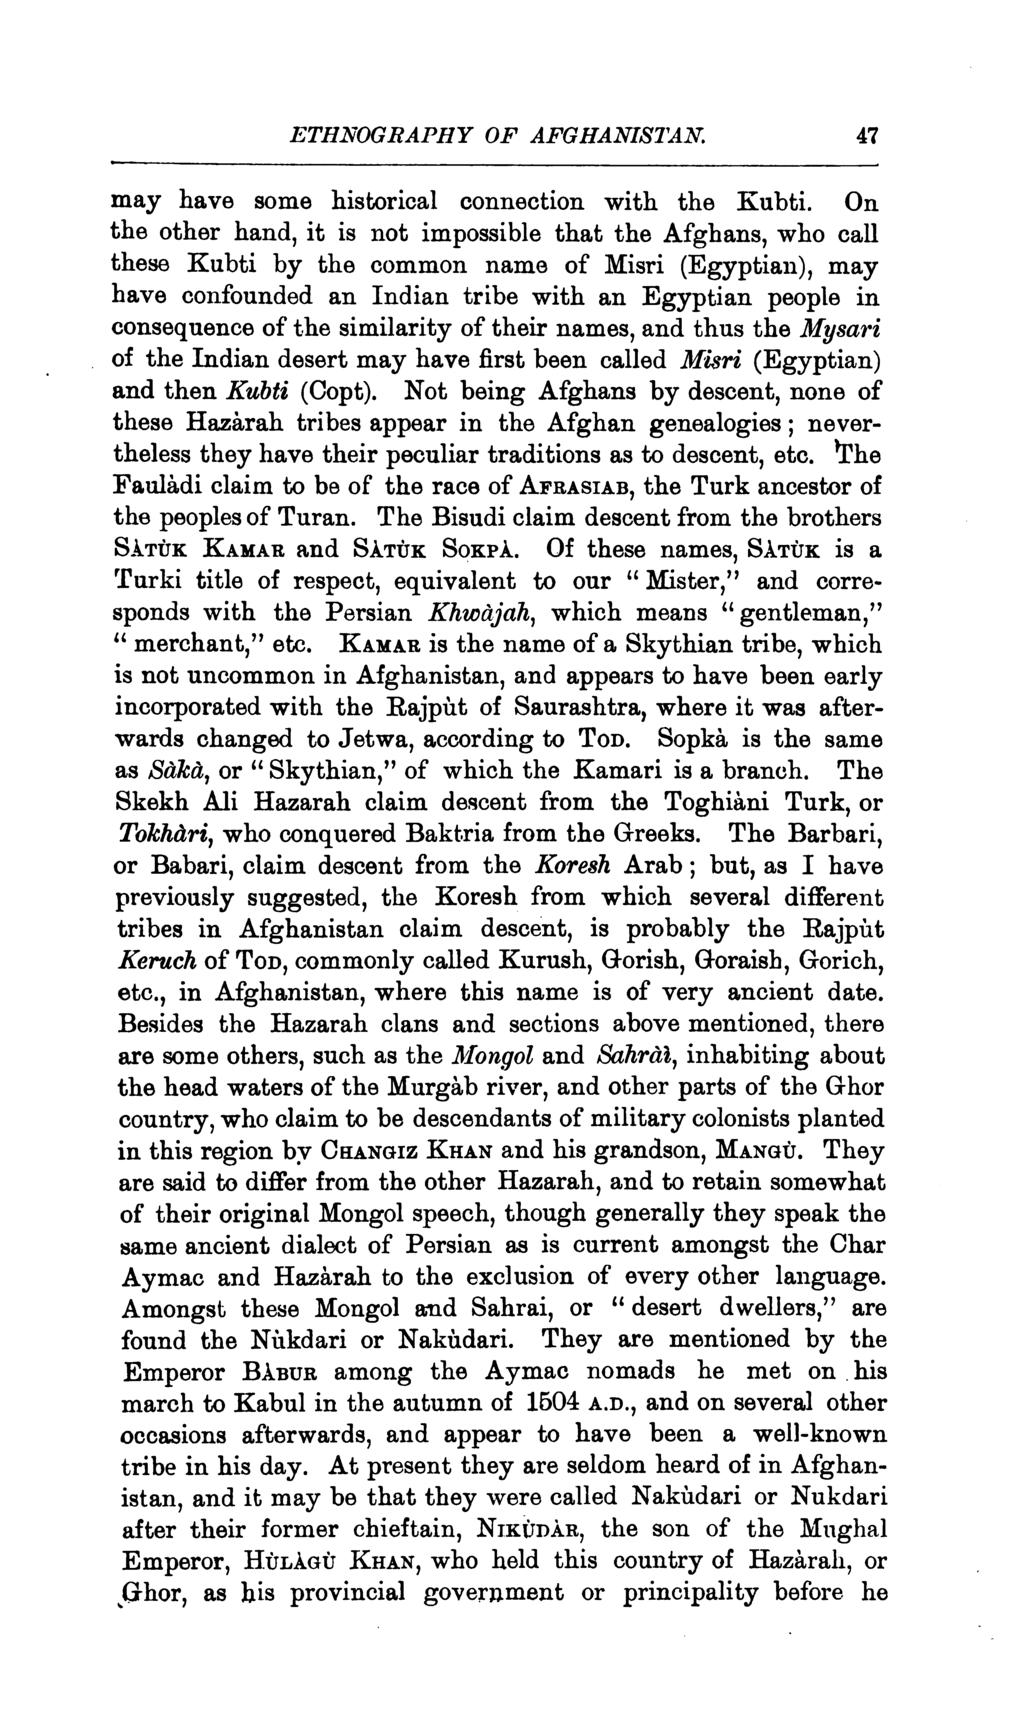 AFGHANISTAN, INTO THE ETHNOGKAYHY AN INQUIRY (LONDON